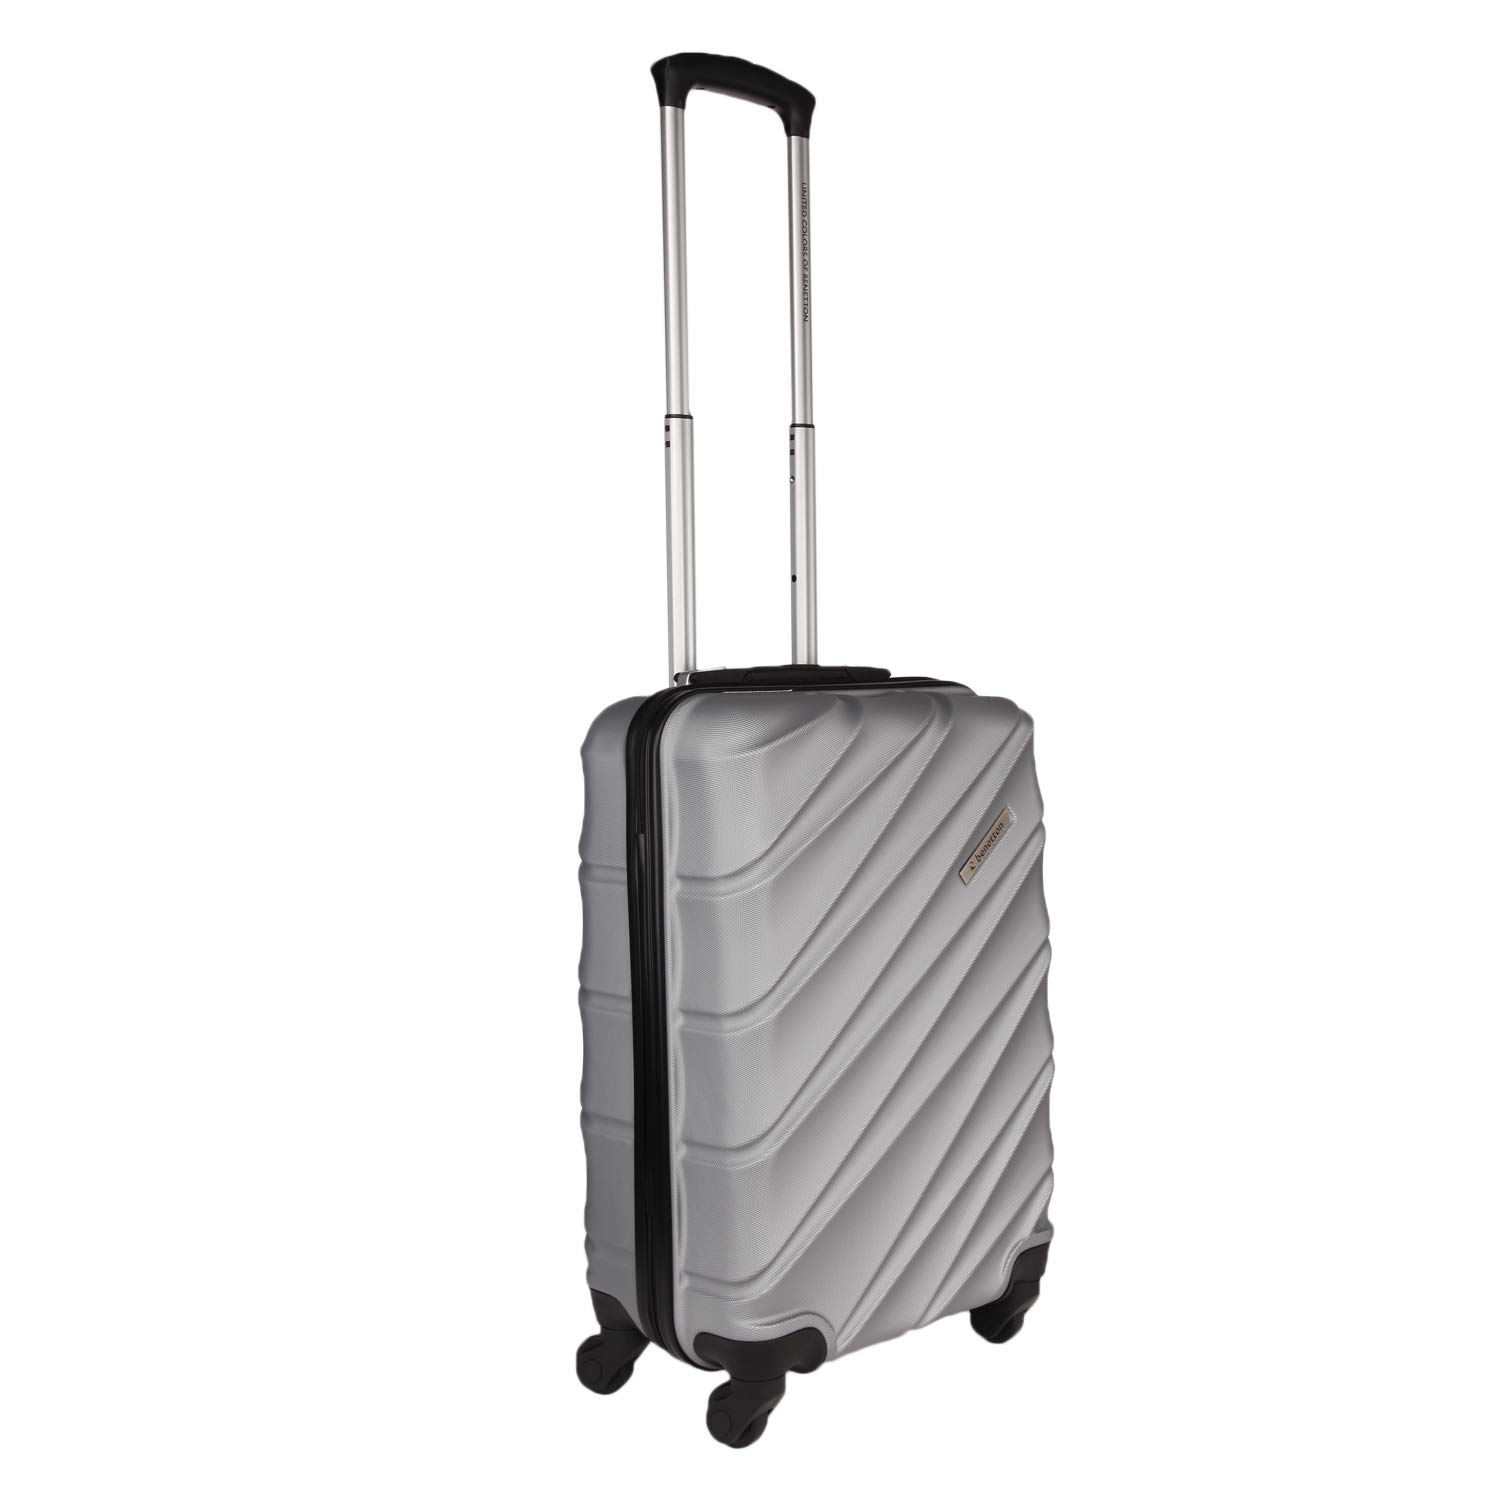 United Colors of Benetton Roadster Hardcase Luggage ABS 57